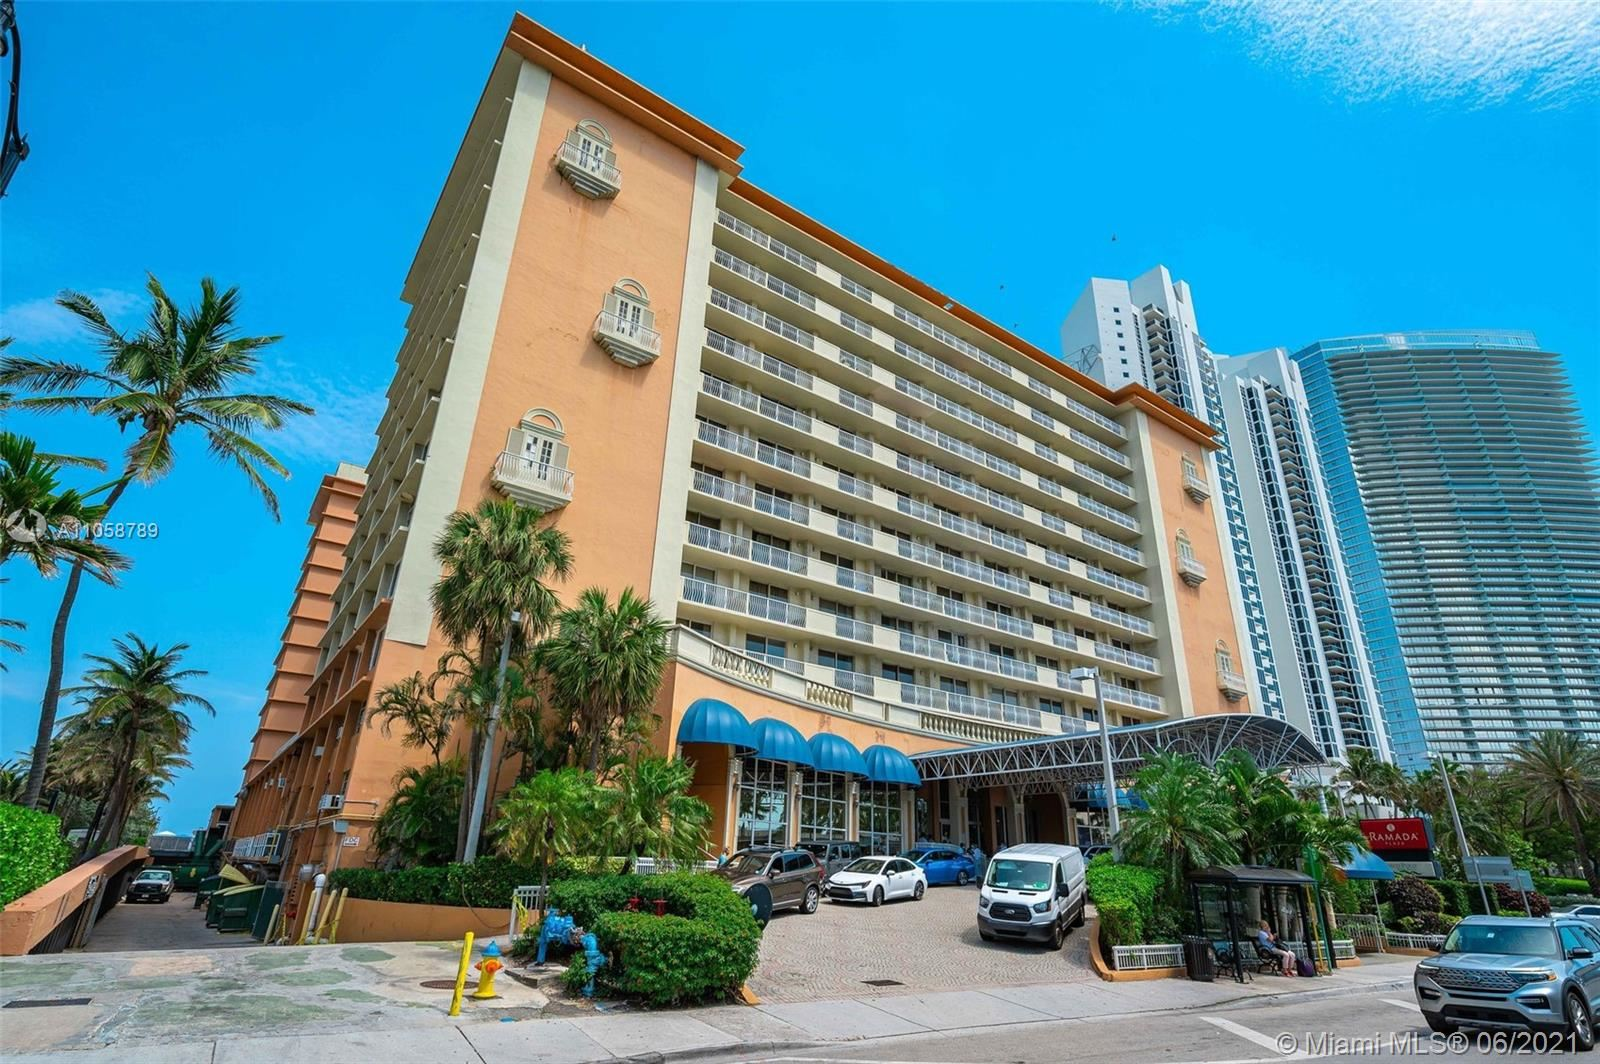 19201 Collins Ave #535, Sunny Isles, FL 33160 - #: A11058789